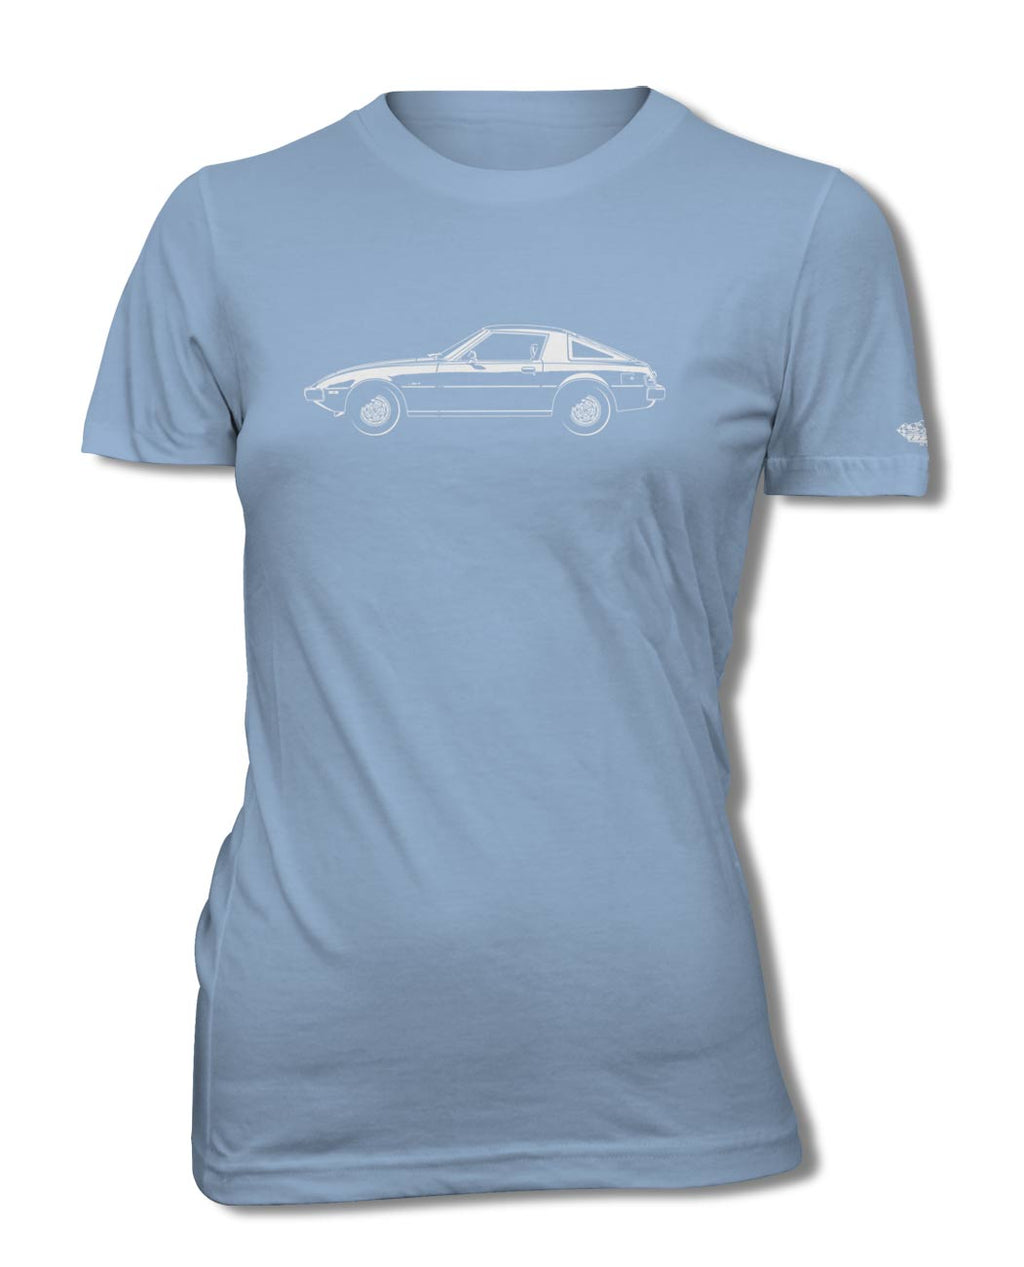 Mazda RX-7 S1 First generation 1978 - 1985 T-Shirt - Women - Side View